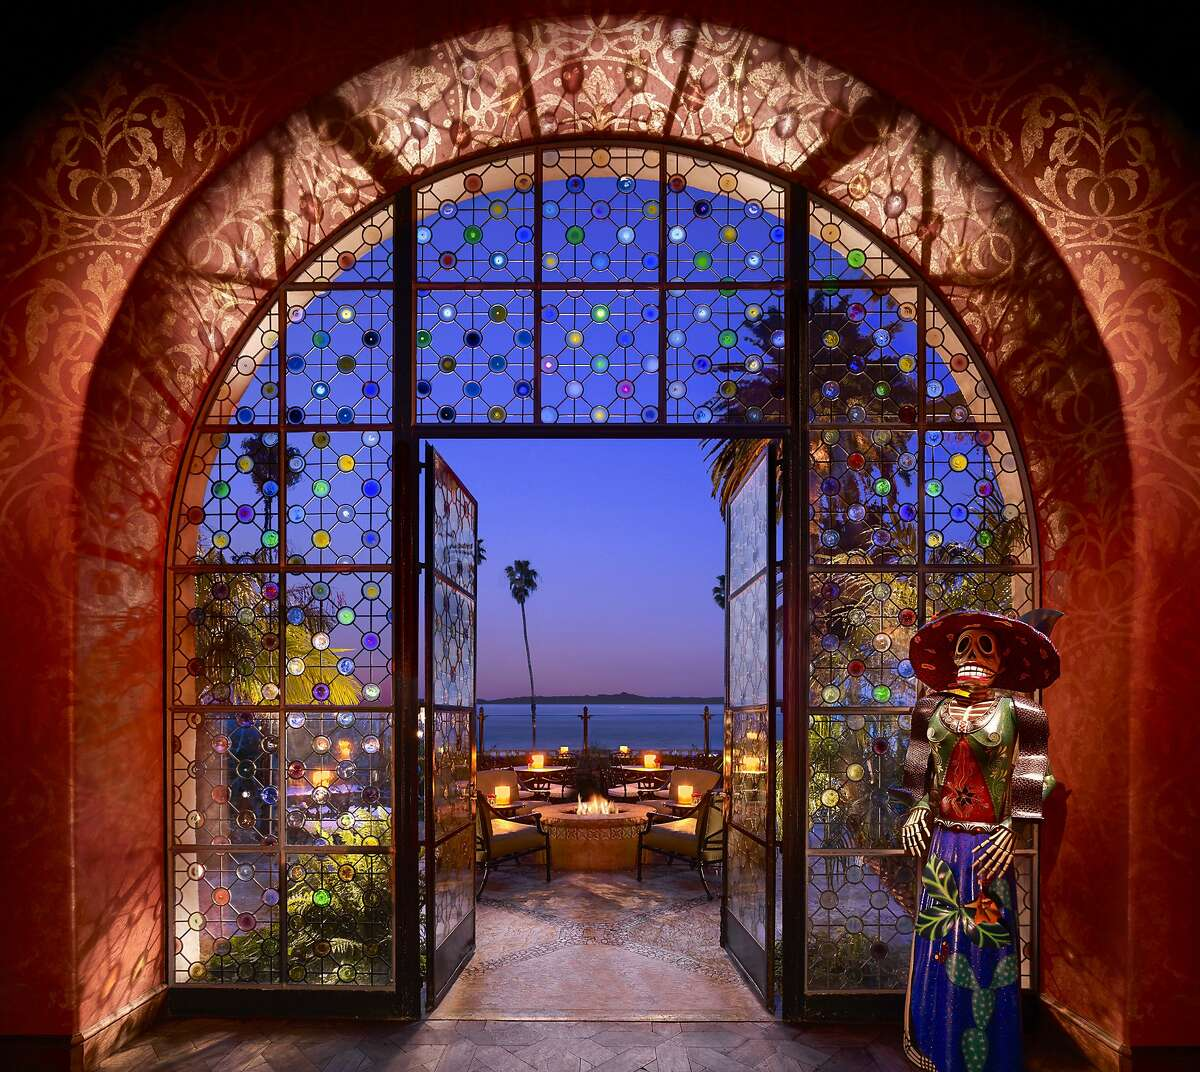 The Four Seasons resort in Santa Barbara is renowned for its dining venues, including Ty Lounge.